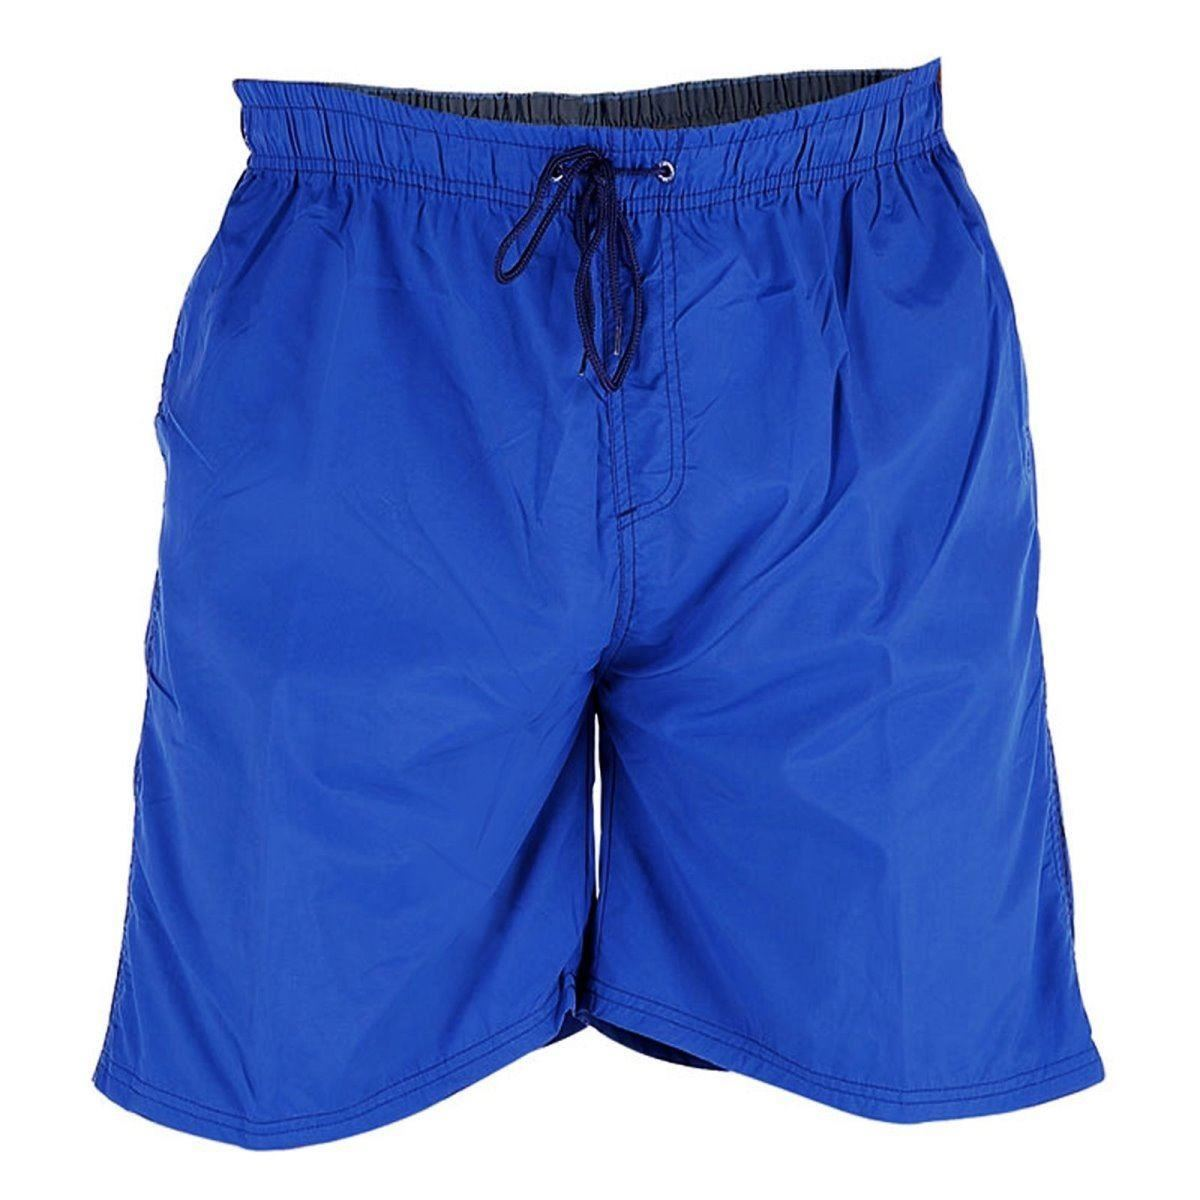 Free shipping on big boys' swimwear at xflavismo.ga Totally free shipping and returns.